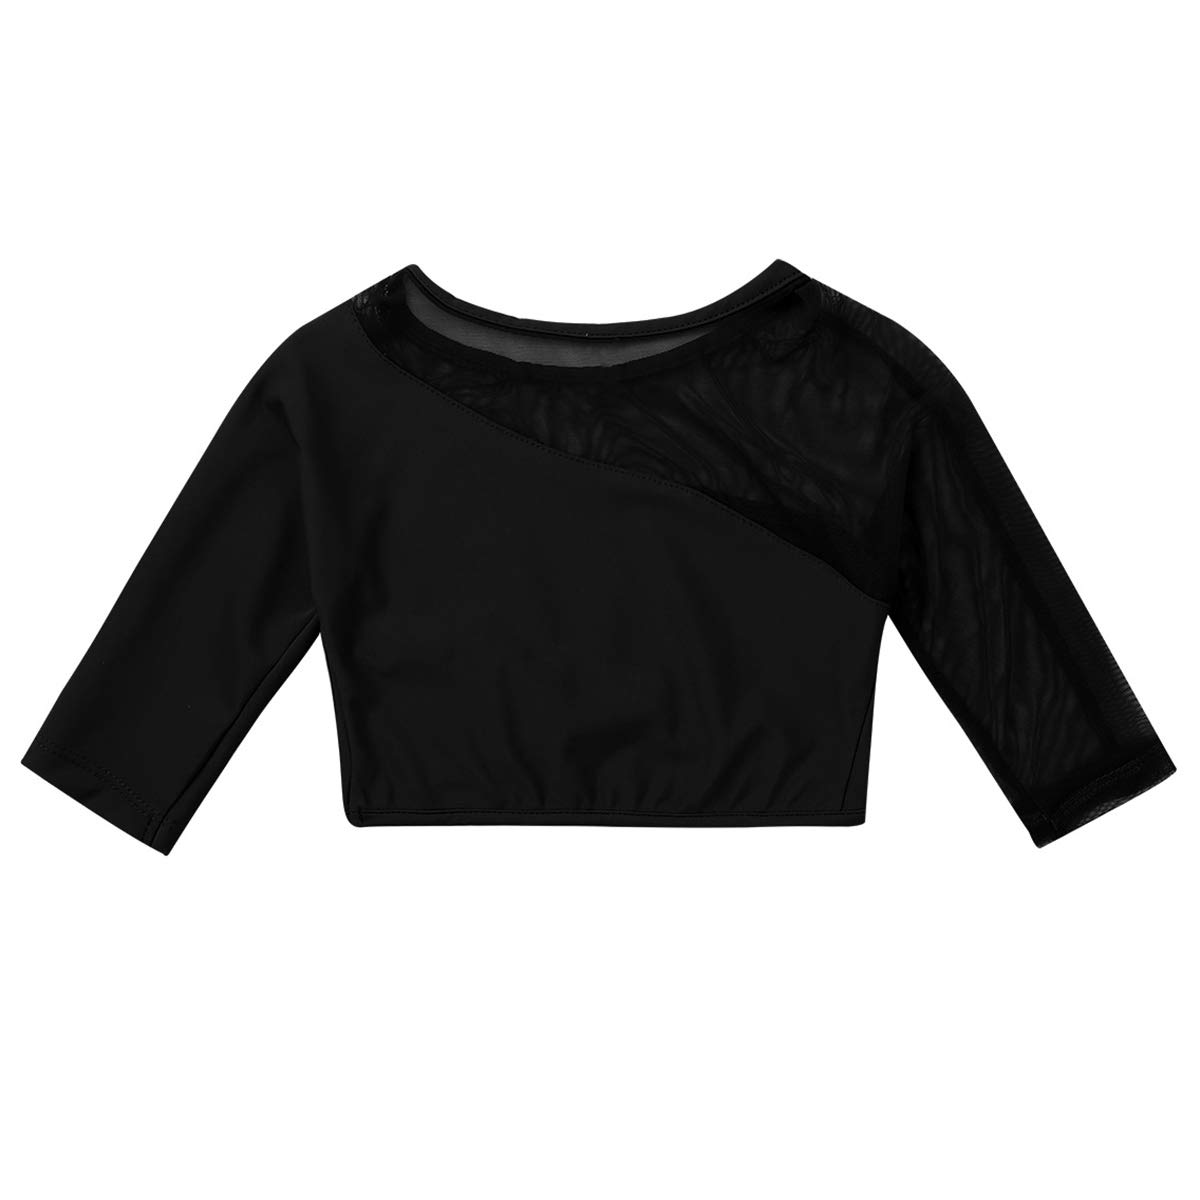 MSemis Girls Lycra Long Sleeved High Neck Crop Top Solid Shirt Dance Performing Sports Costume